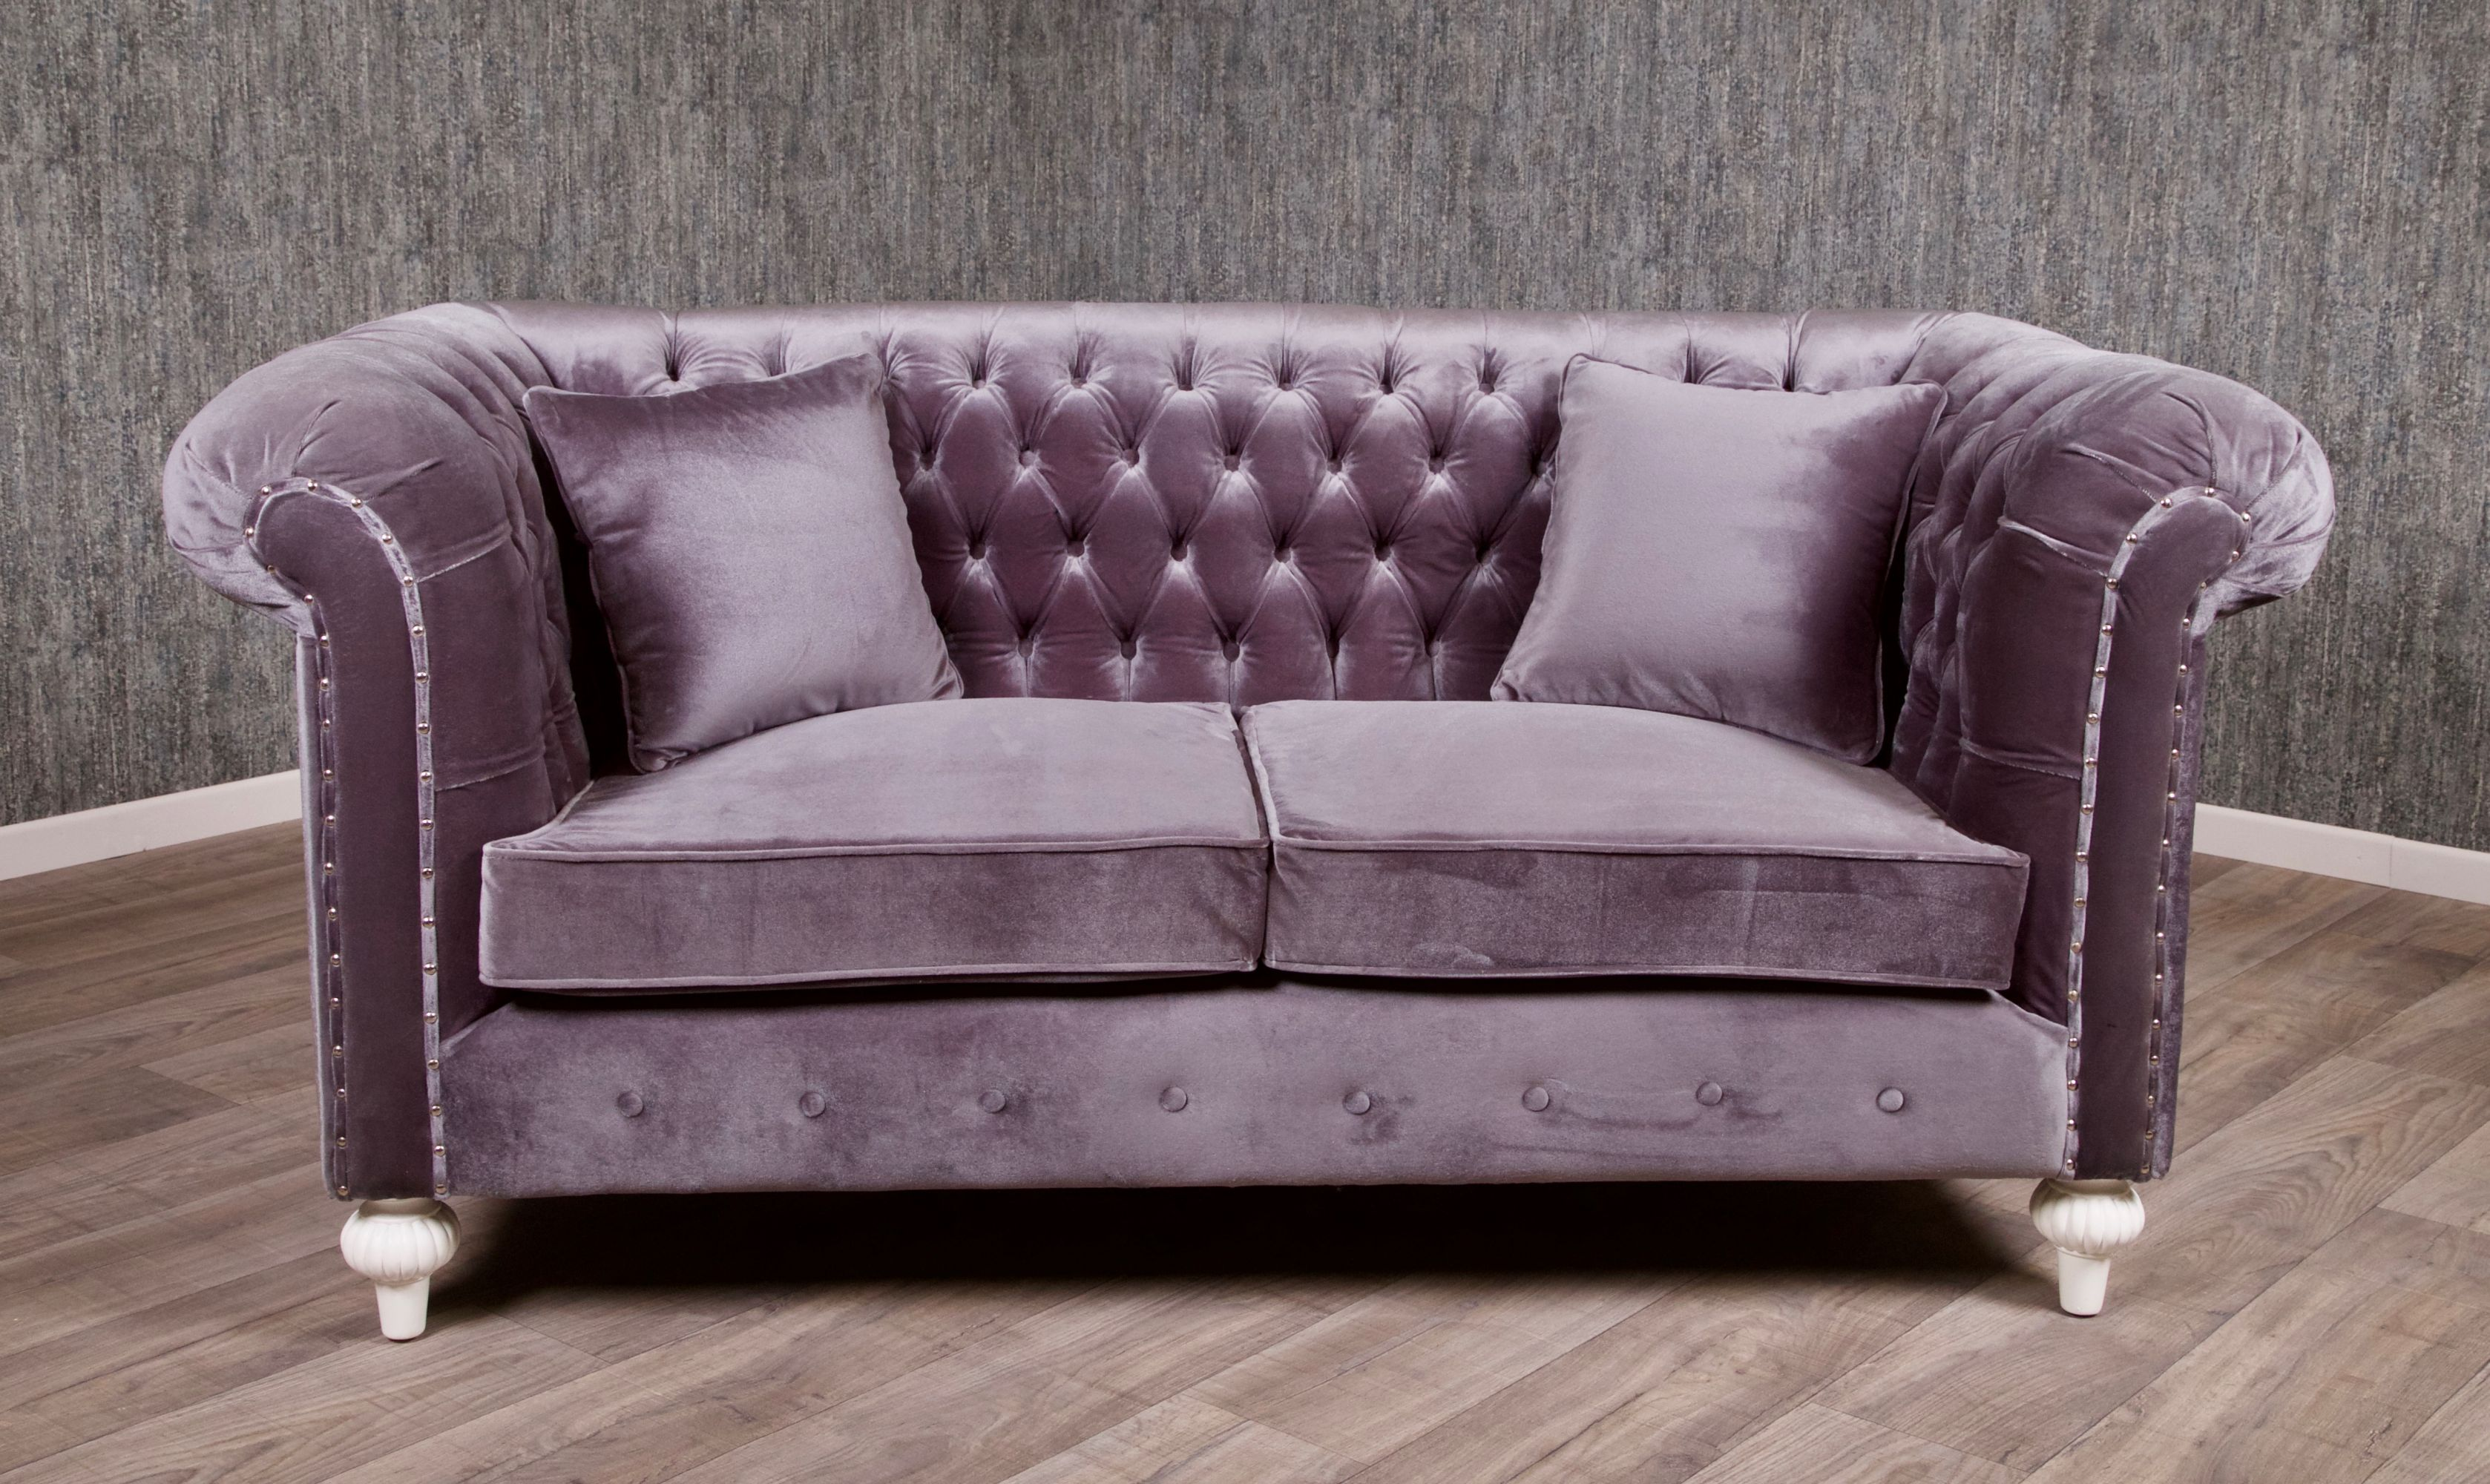 Chesterfield Sessel Stoffbezug Barock Chesterfield Sofa 2 Sitzer Empire Grau